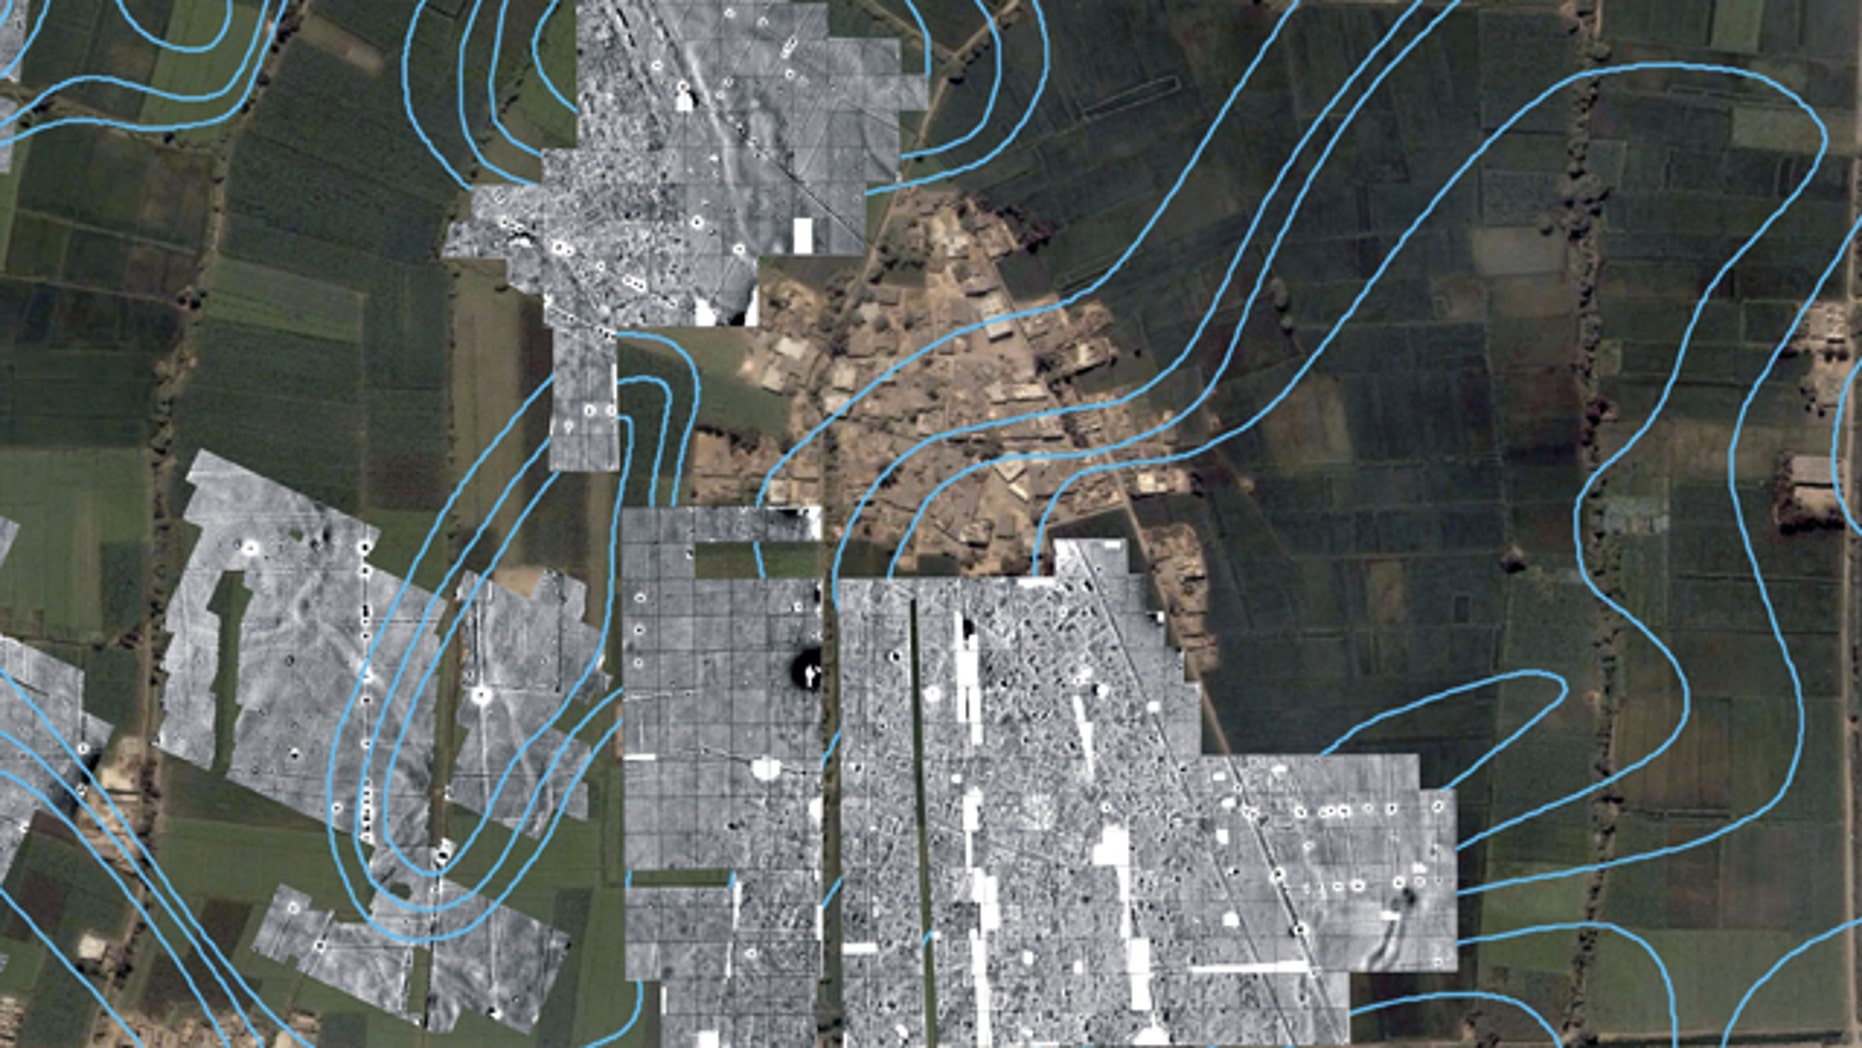 A color satellite image with radar imaging in monochrome showing the outlines of streets, houses and temples underneath the green farm fields and modern town of Tel al-Dabaa, in Egypt. An Austrian archaeological team has used radar imaging to determine the size of the 3,500-year-old capital of Egypt's foreign occupiers, the Hyksos warrior people from Asia, the antiquities department said Sunday.